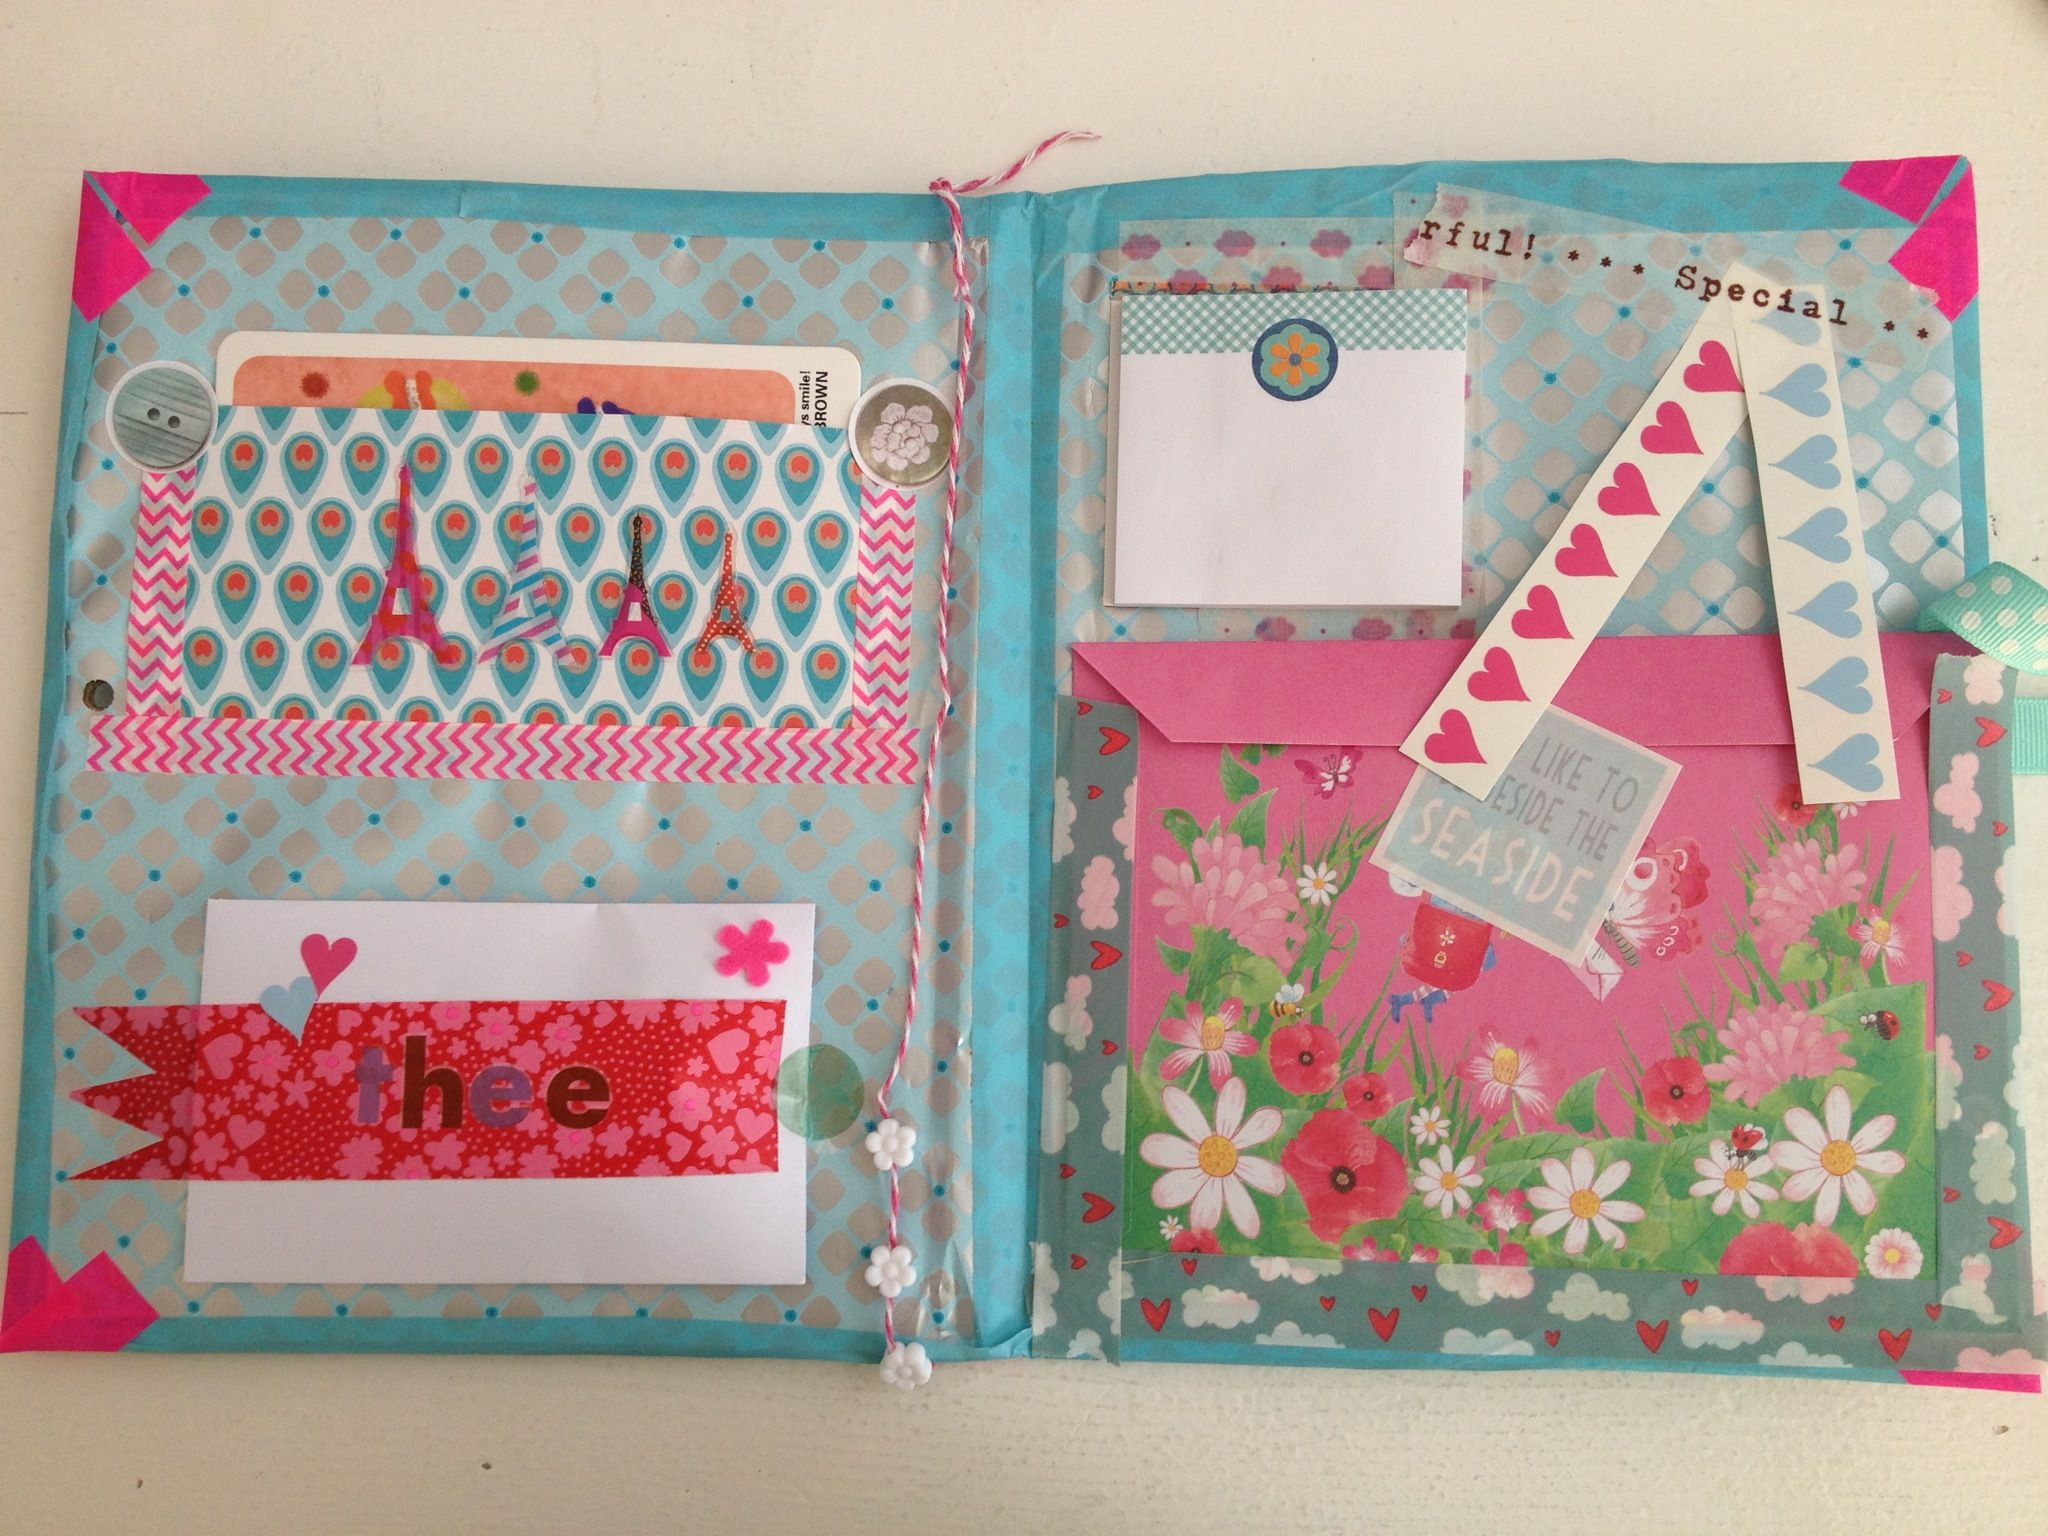 Snail mail folder for mail on the go!!! To make to make